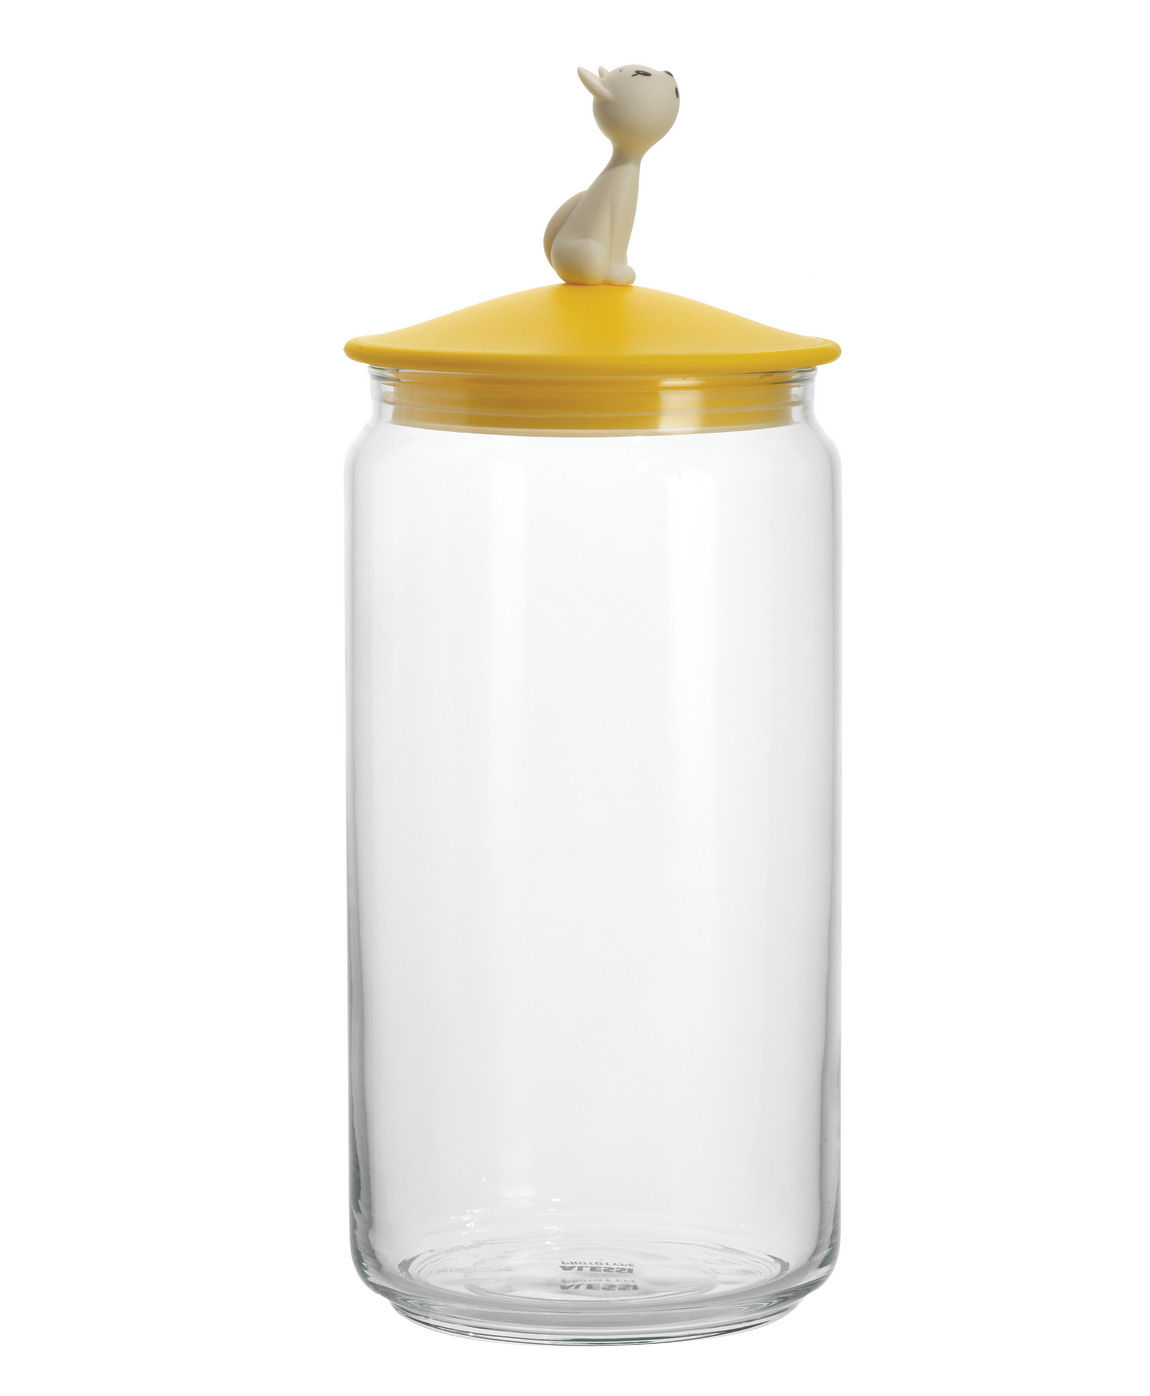 Tableware - Boxes and jars - MiòJar Airtight jar by A di Alessi - Yellow - Glass, Thermoplastic resin